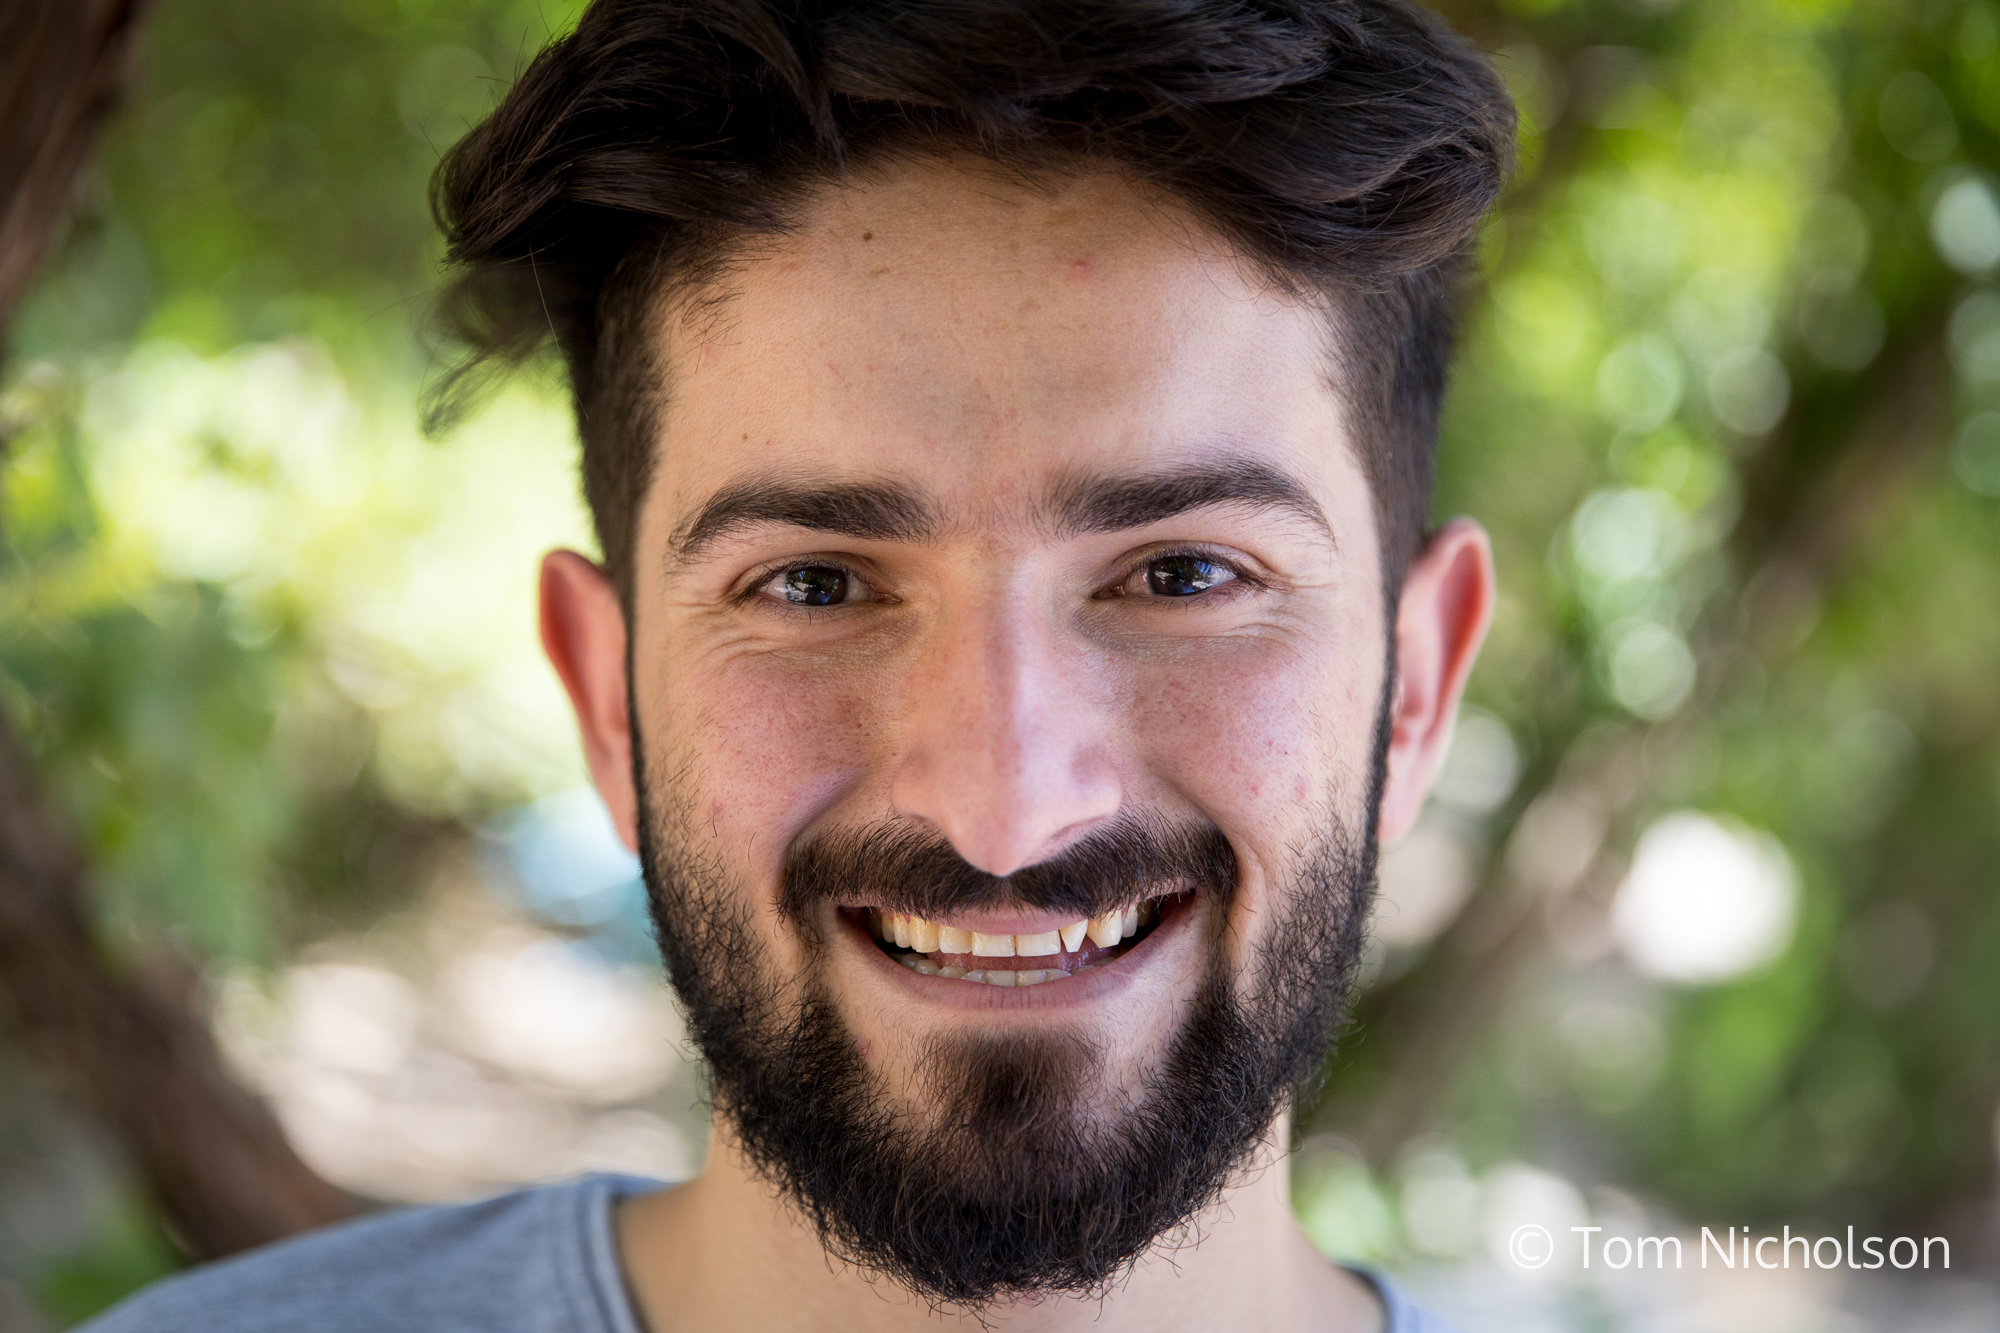 """©2018 Tom Nicholson. 27/06/2018. Erbil, Iraq. Bawar Muhammed, age 22, from Iraqi-Kurdistan has set up a service that links Iraqi Kurds to opportunities to study abroad or apply for grants and scholarships. Bawar quoted Nelson Mandela: """"The most powerful weapon to change the world is education"""". Bawar works on the the 'Boost Your Beliefs' (BYB) counter-radicalisation programme. The programme focuses on countering online radicalisation by storytelling, campaigning and sending alternative messages. It aims to direct young people to education and job opportunities, paving the way for a future workforce and subsequently reducing the risk of future radicalisation and violent extremism."""